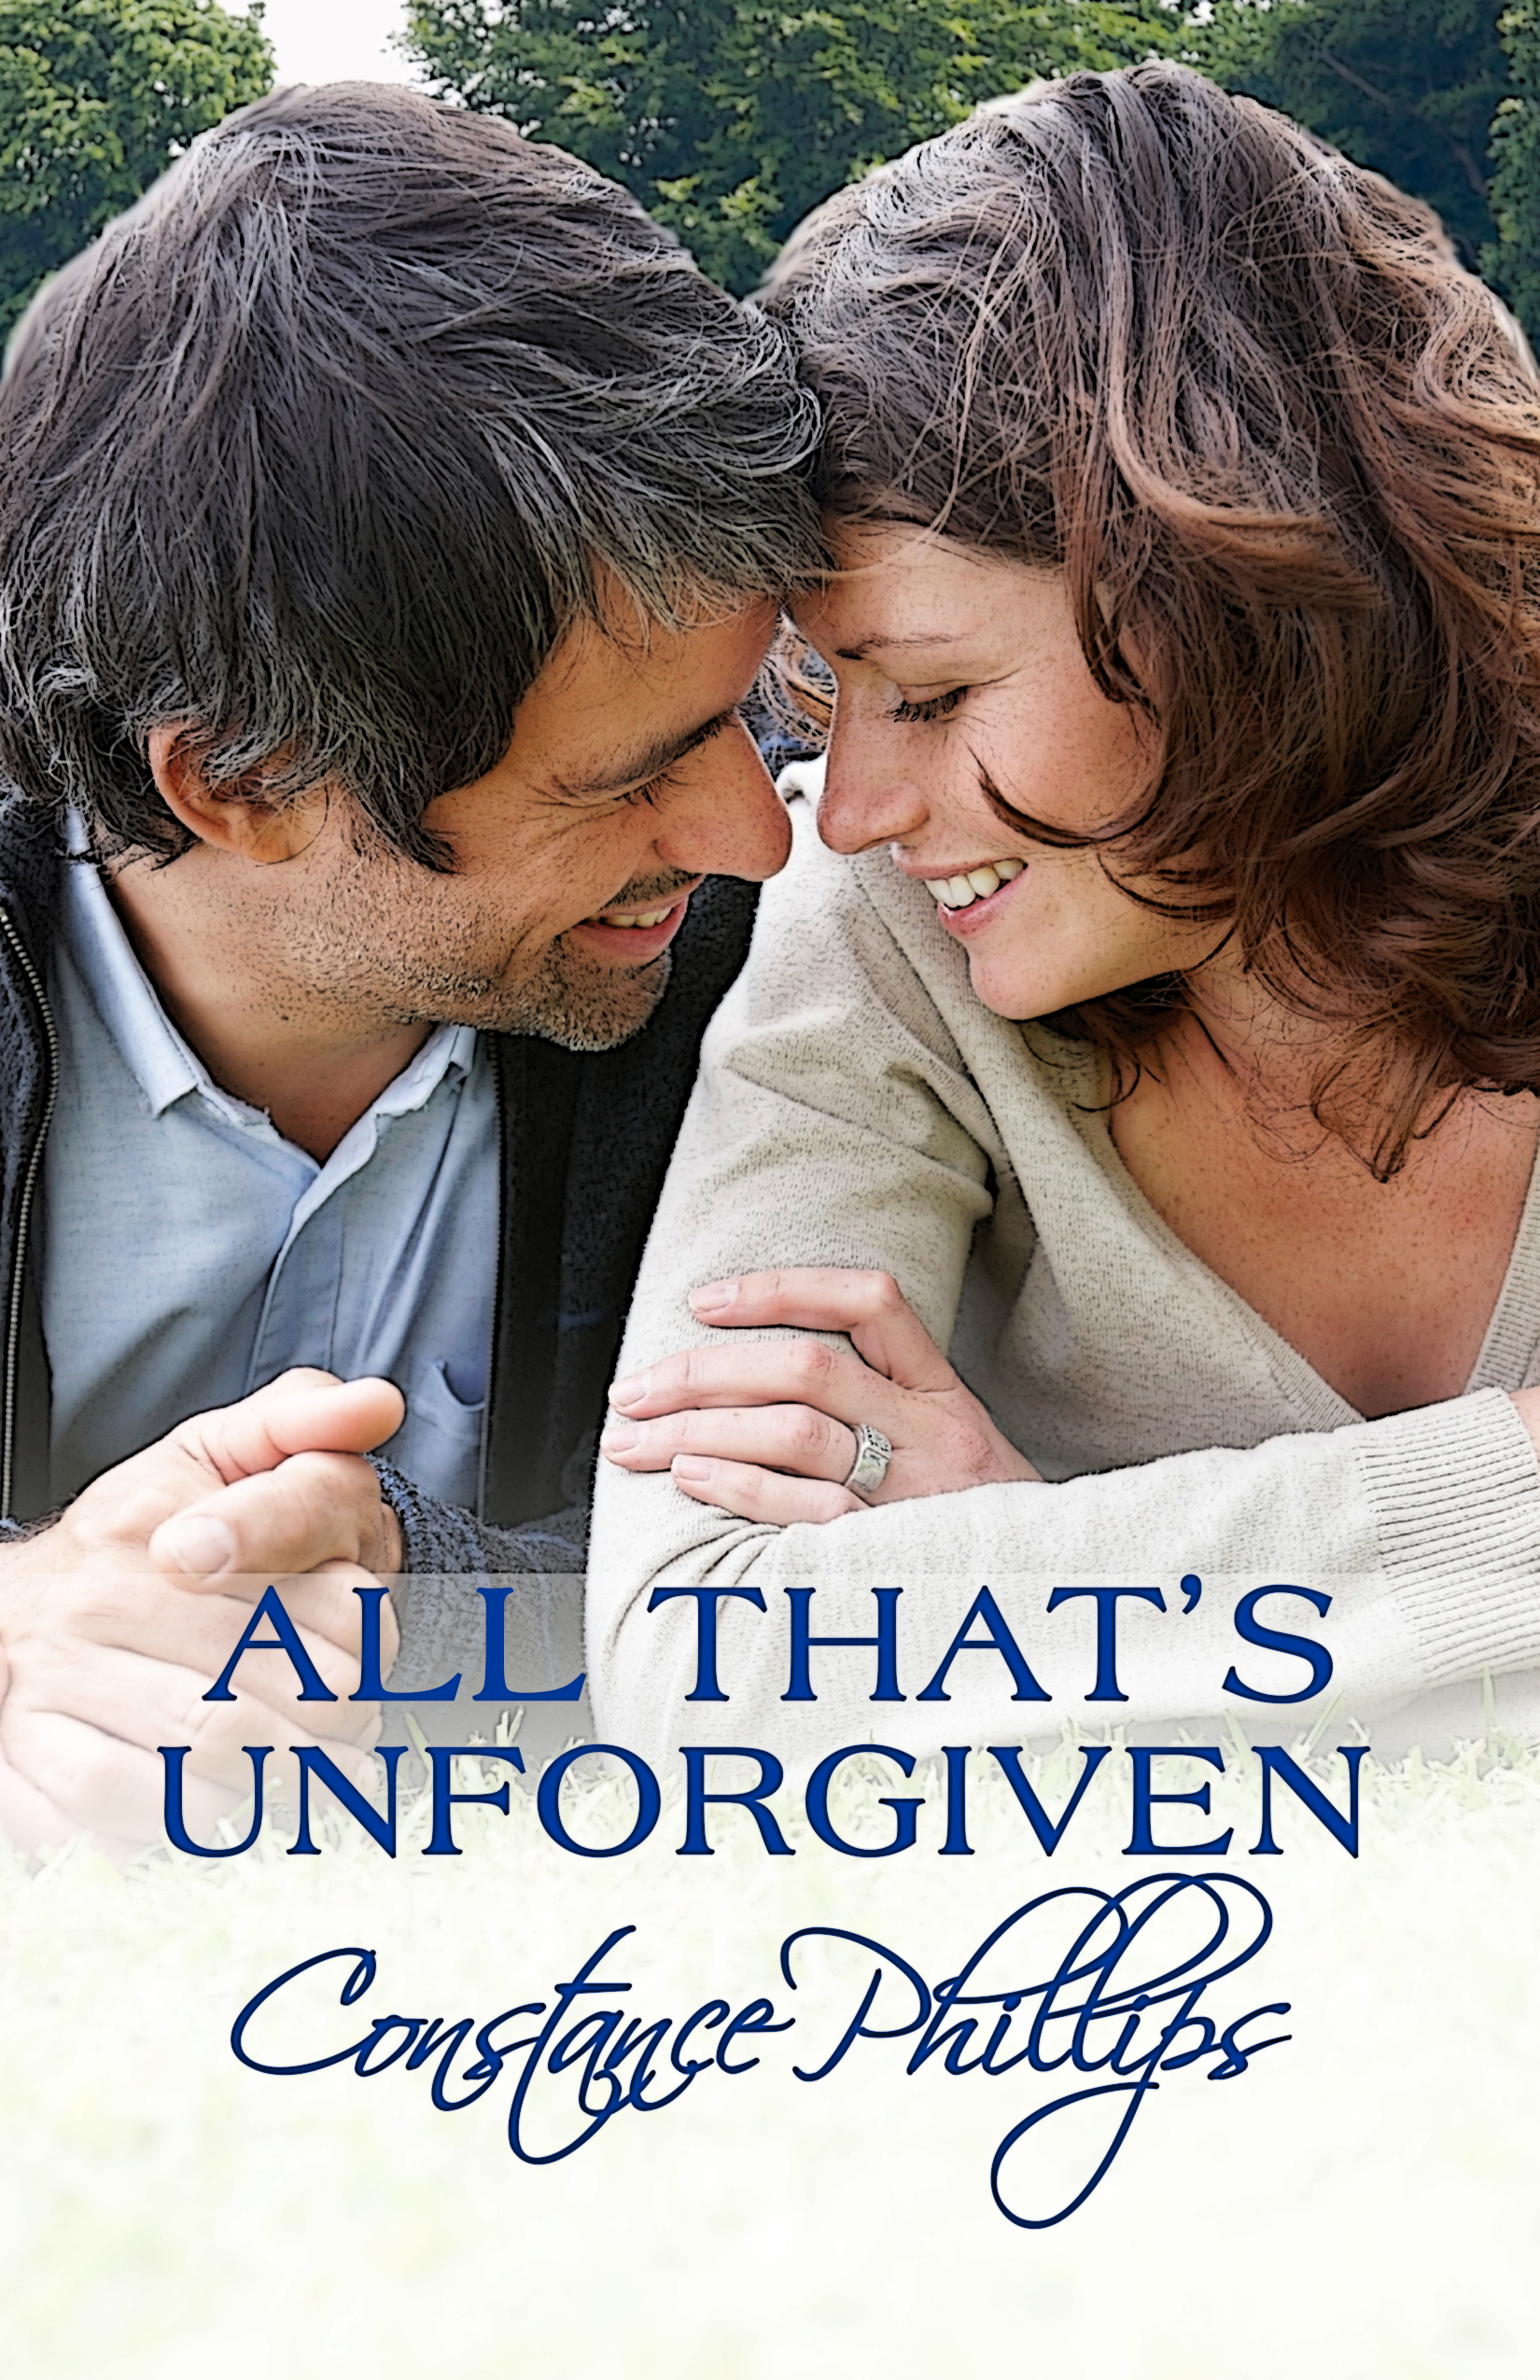 All Thats Unforgiven (SunnyDale Days, #4)  by  Constance Phillips